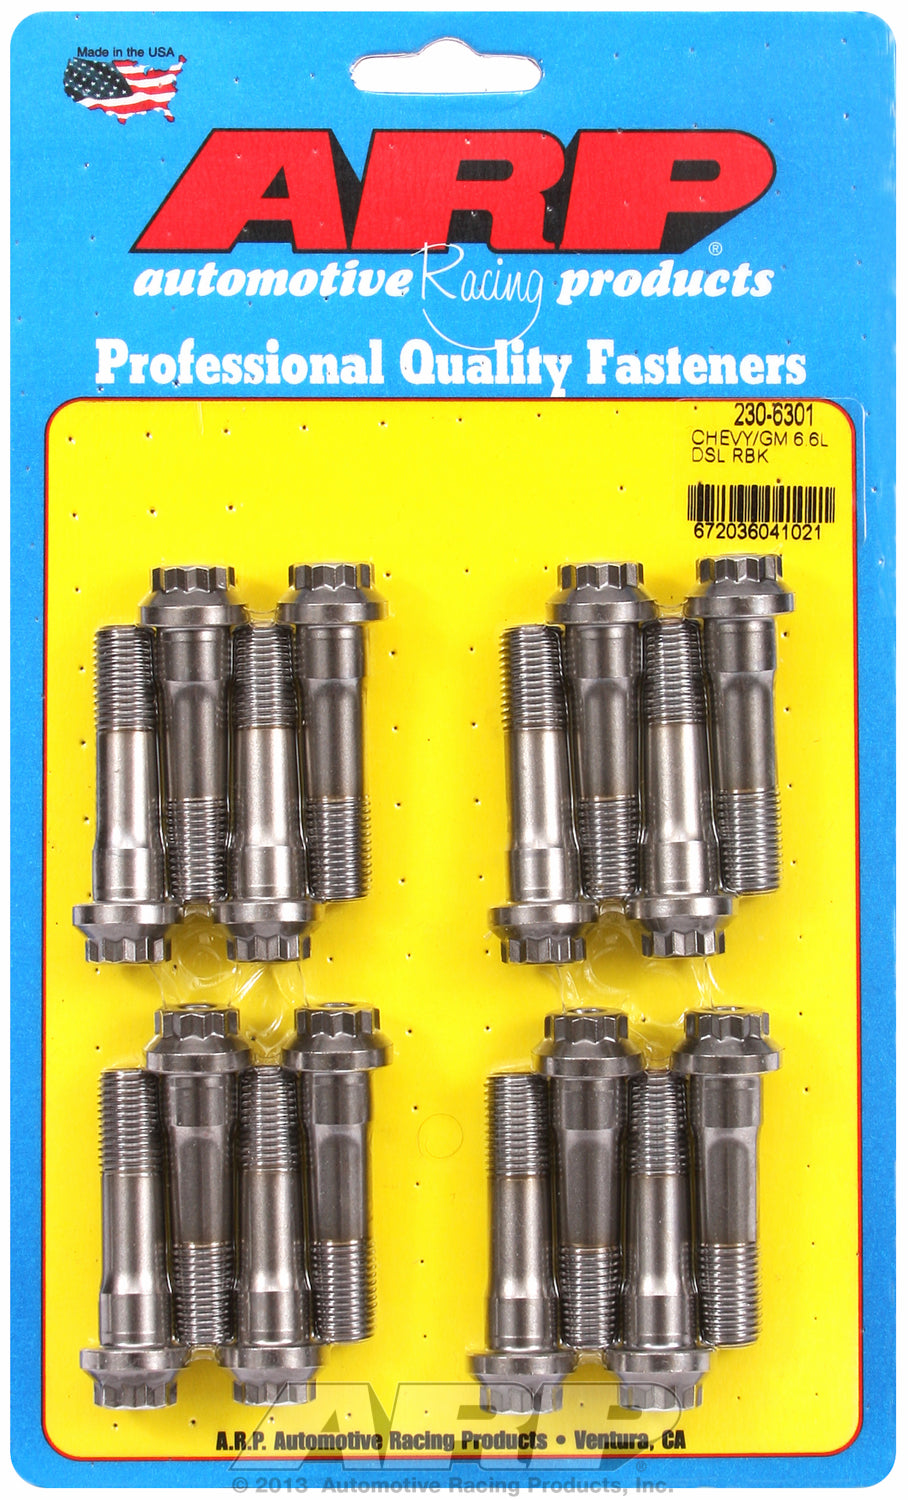 Pro Series ARP2000 Complete Rod Bolt Kit for Chevrolet Chevy/GM 6.6L Duramax